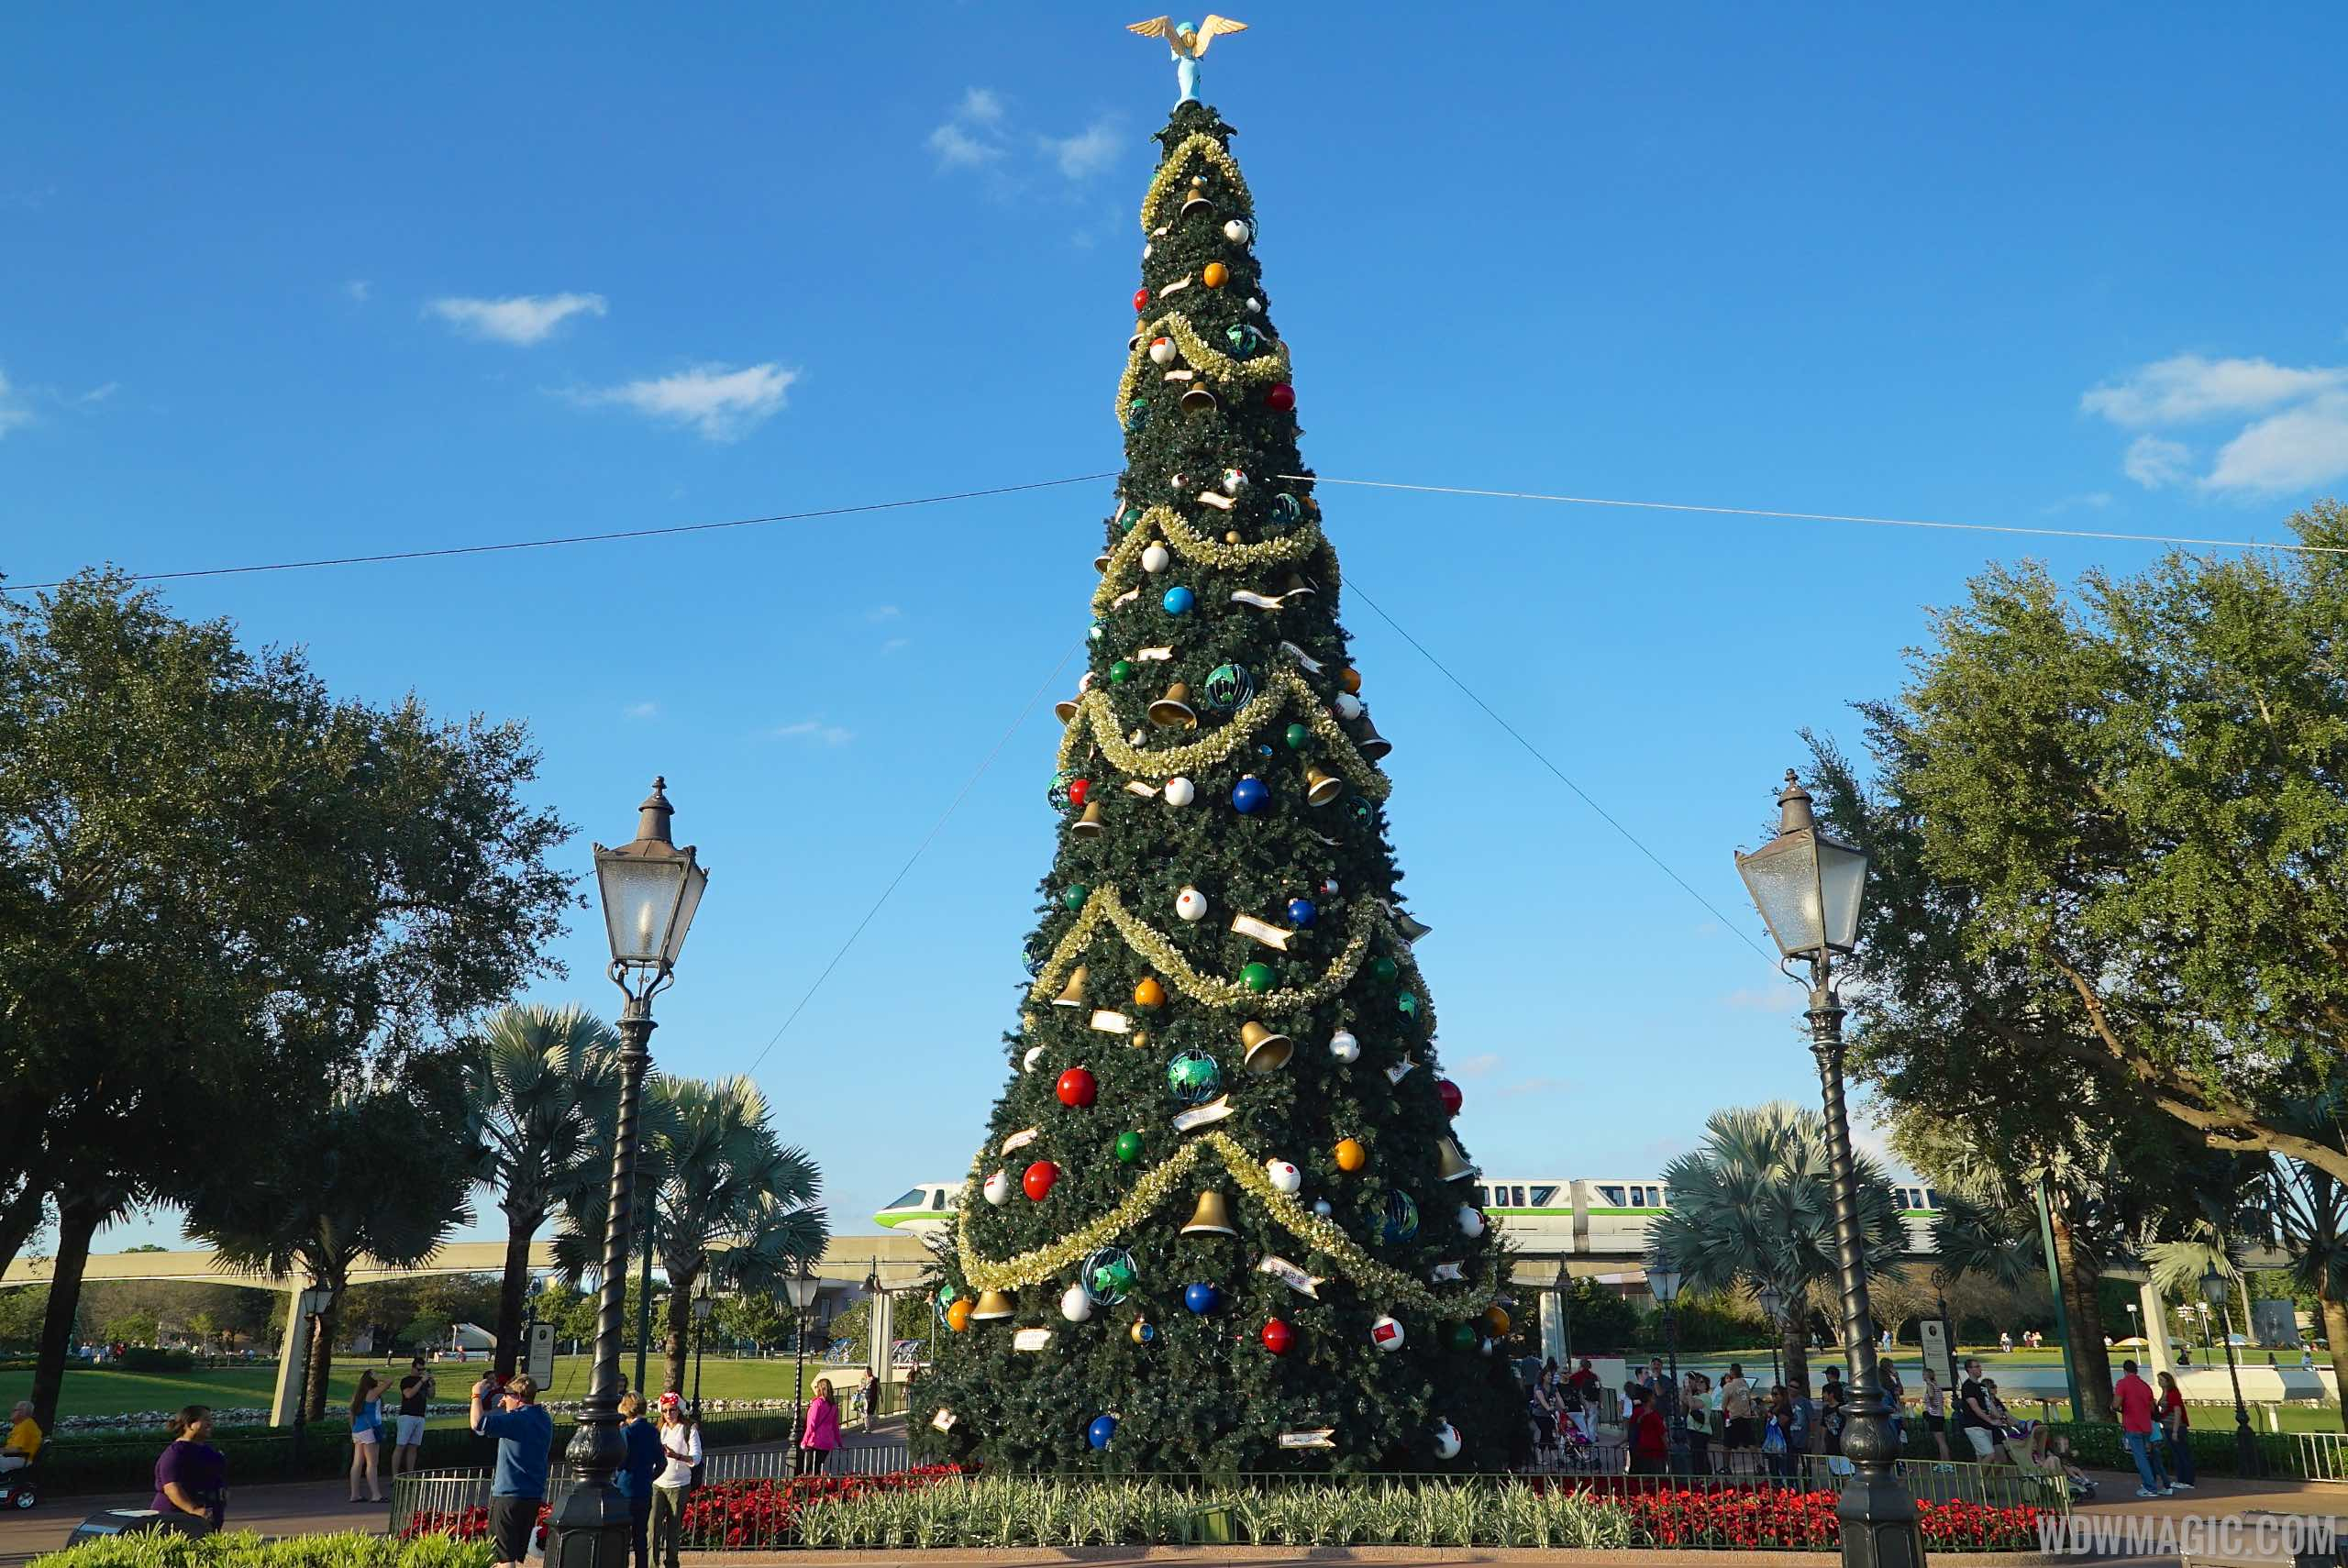 Epcot's Christmas Tree